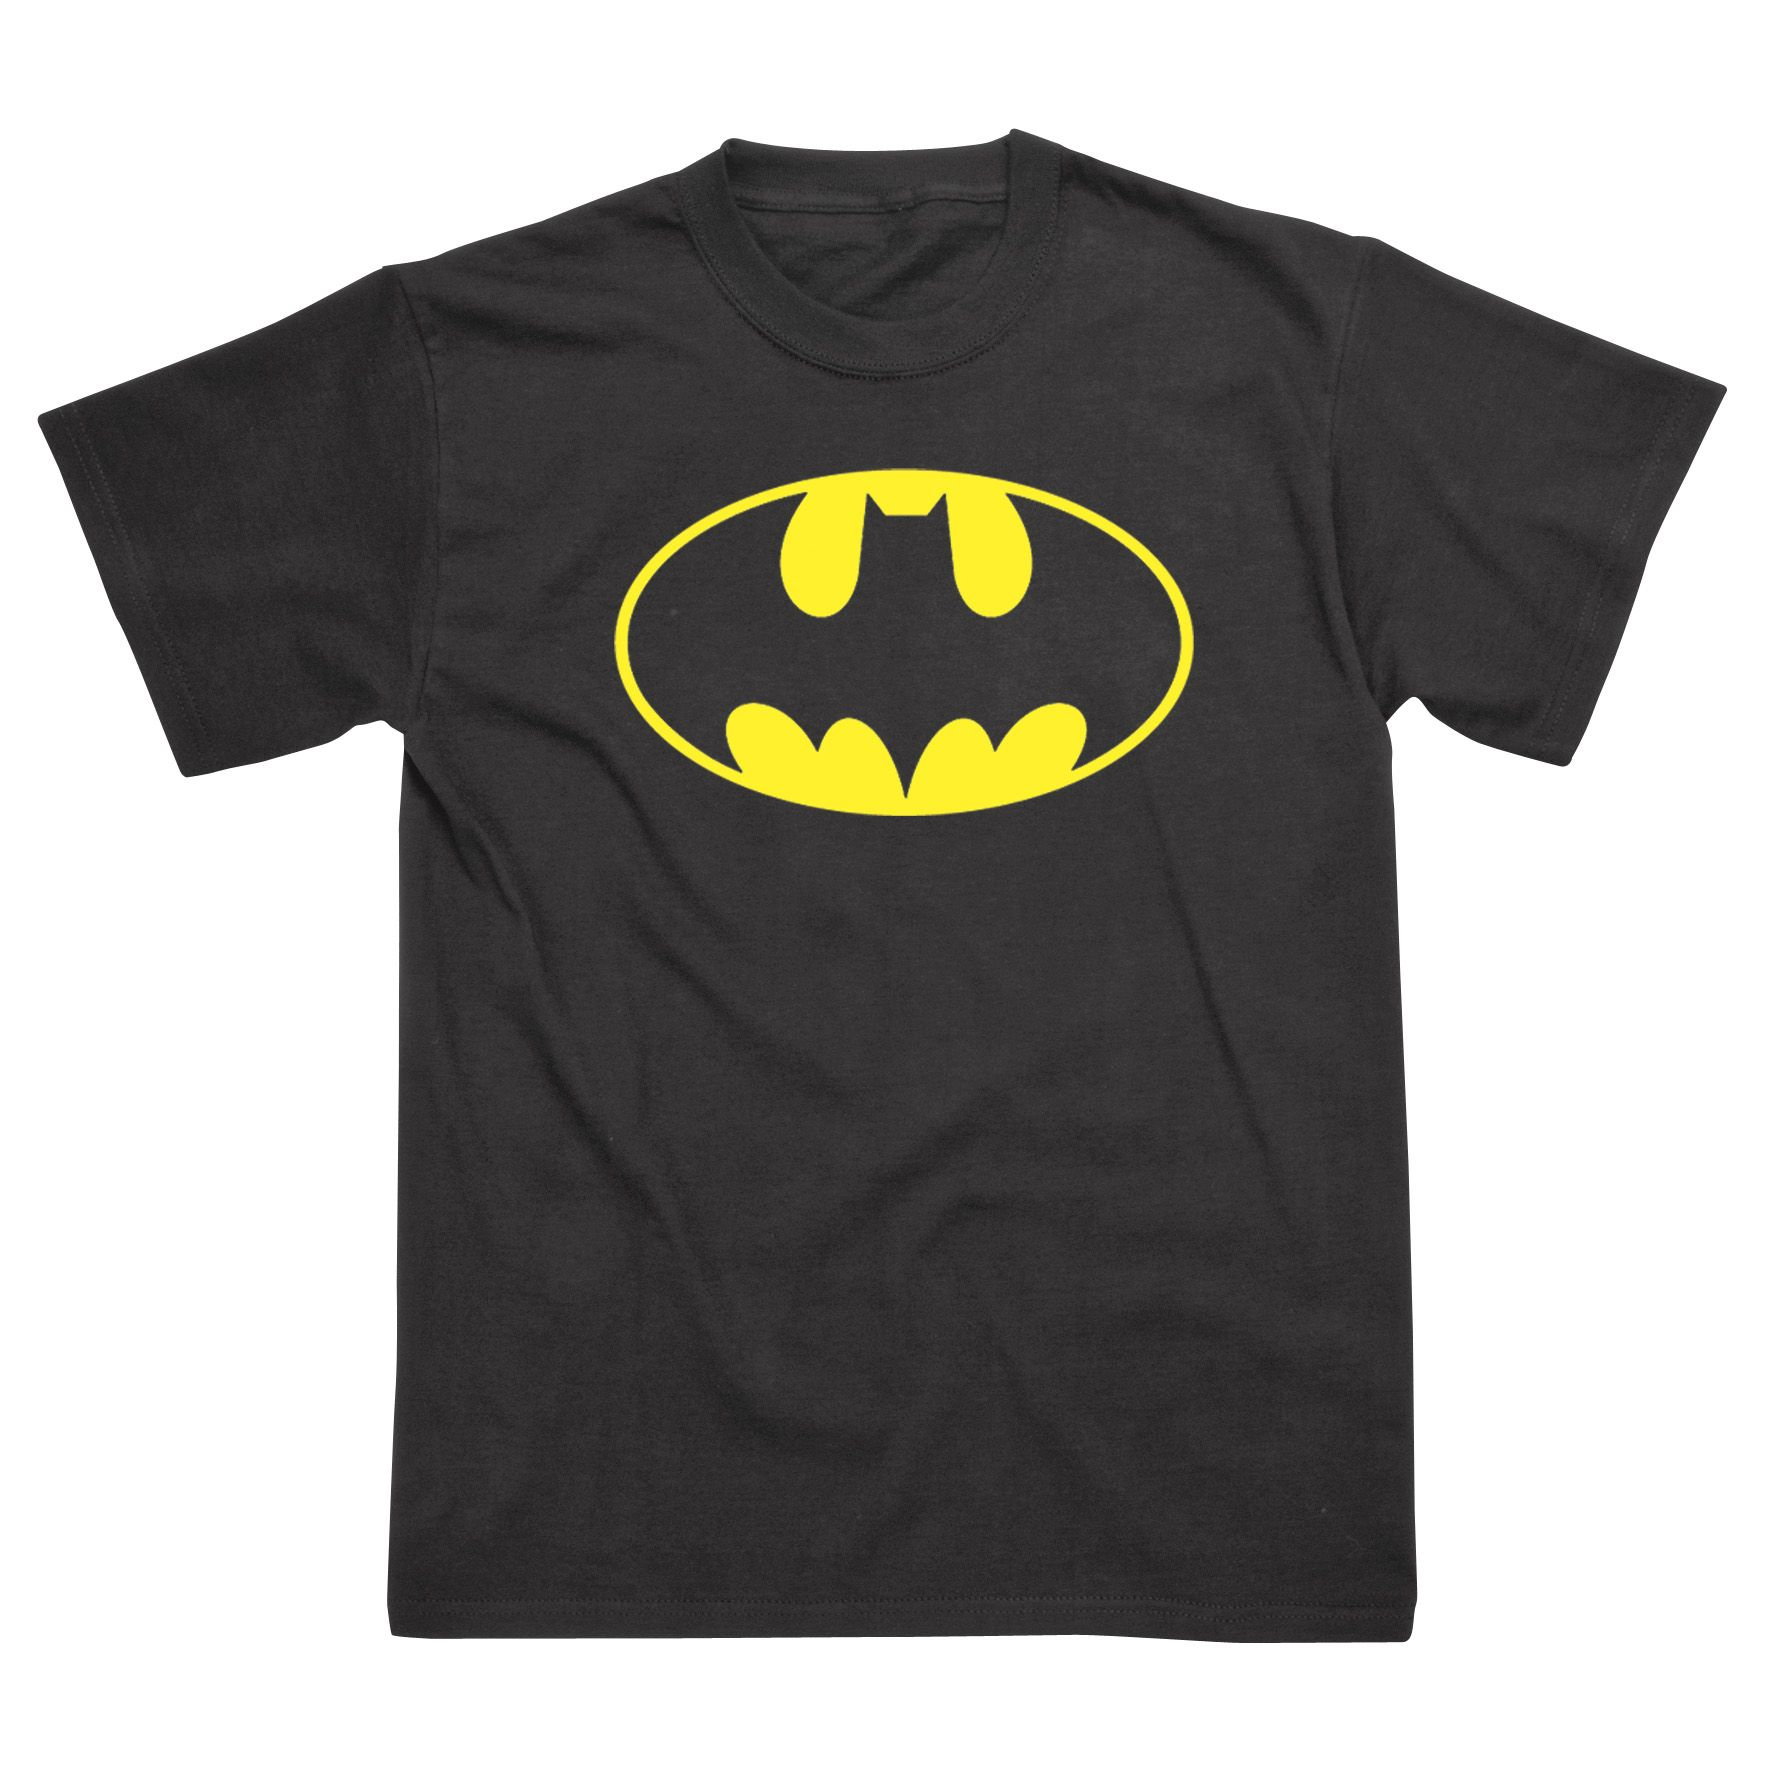 batman classic t shirt. Black Bedroom Furniture Sets. Home Design Ideas